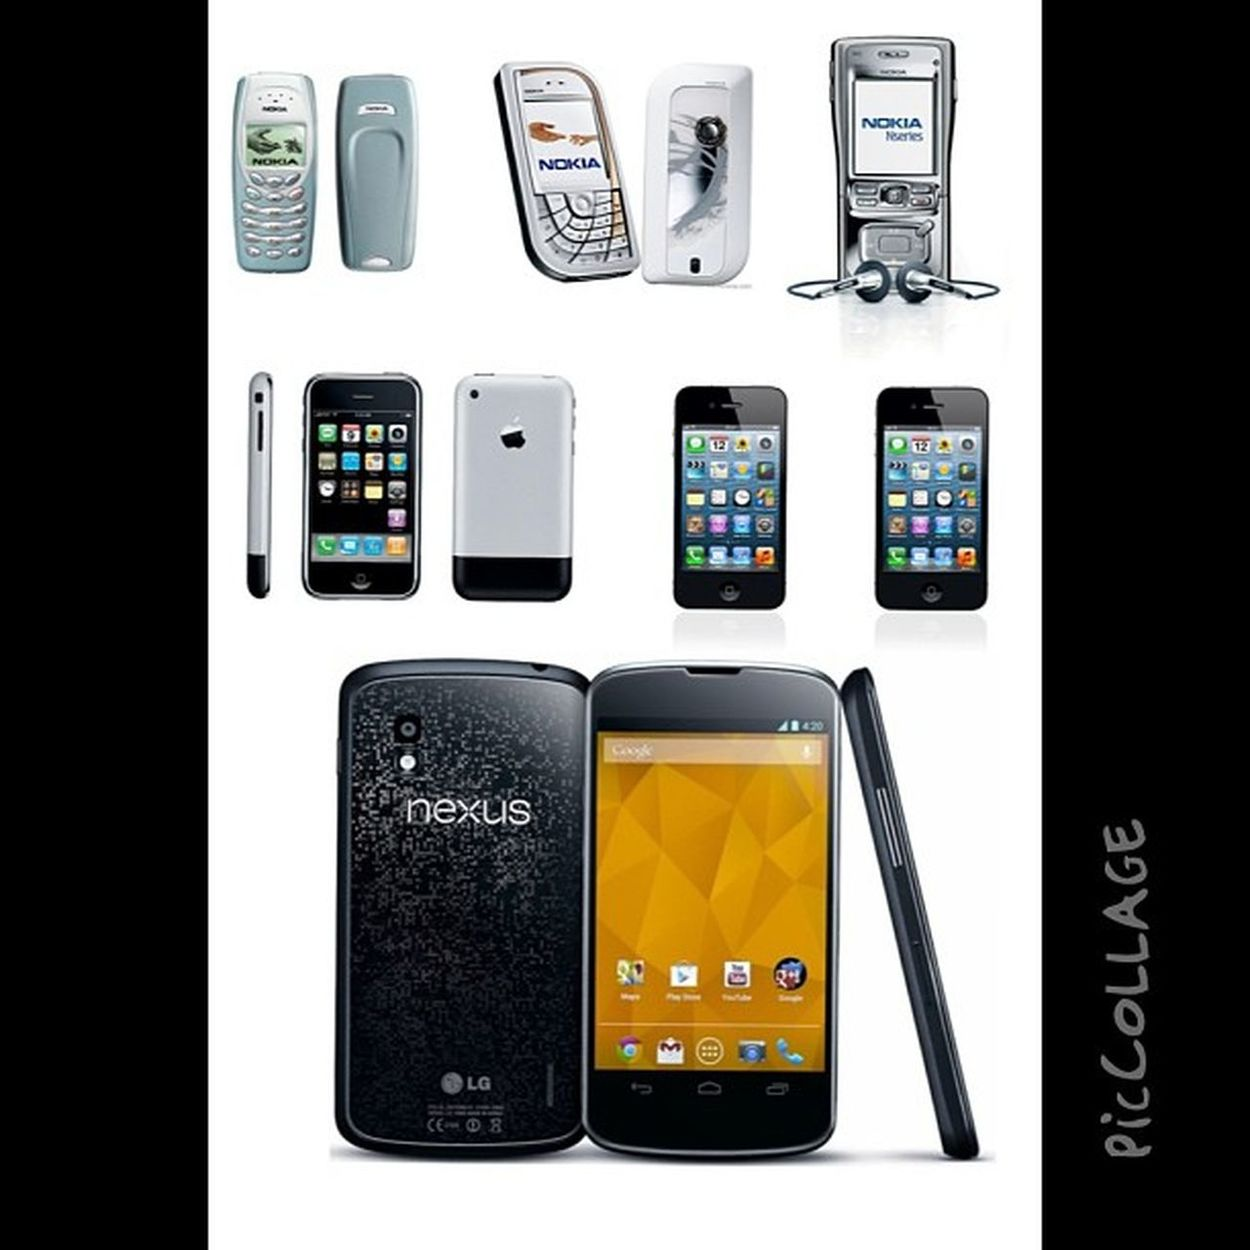 From the oldest to the most current...what's next? #piccollage #nokia3410 #nokia7610 #nokiaN91 #iPhone2G #iPhone4 #iPhone4S #Nexus4 IPhone4s Nexus4 Iphone4 PicCollage  Nokia3410 Nokian91 Iphone2g Nokia7610